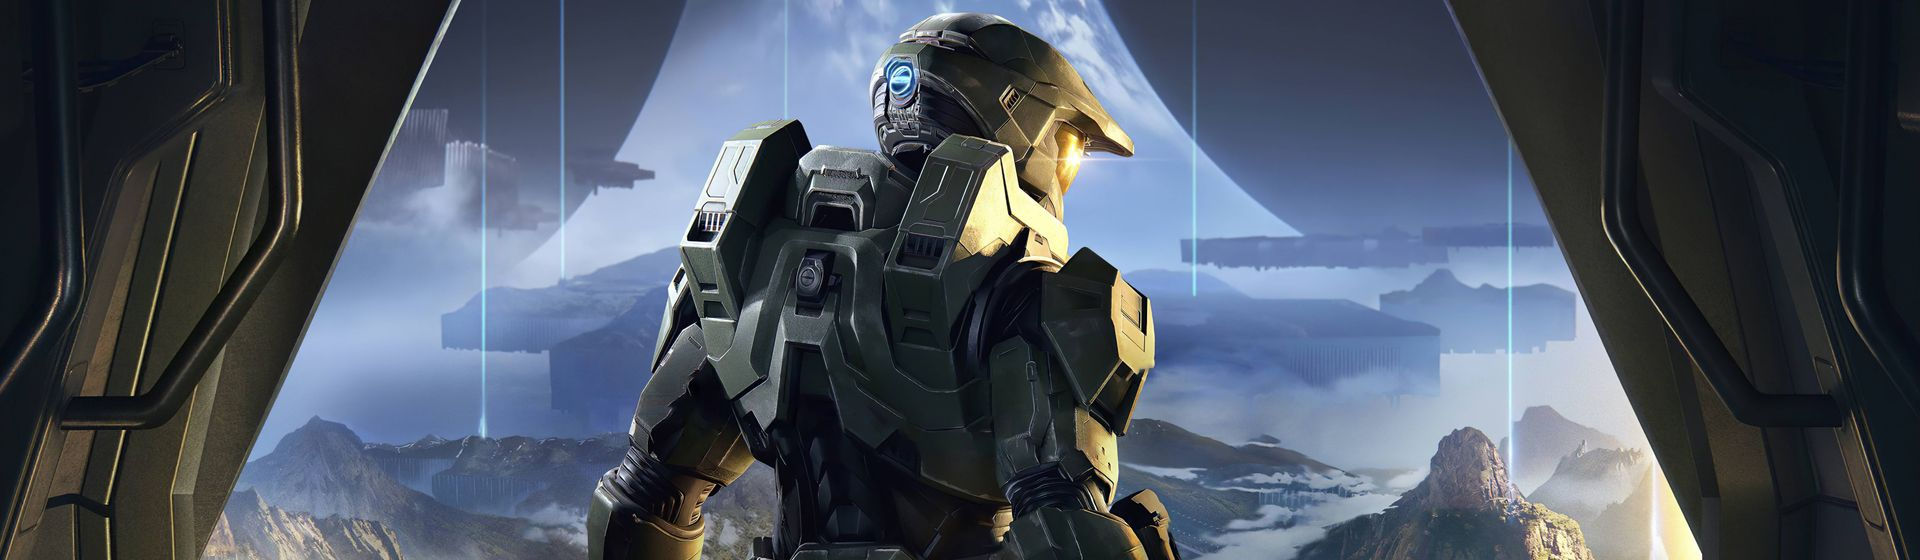 Halo Infinite e mais: trailers e lançamentos do Xbox Games Showcase